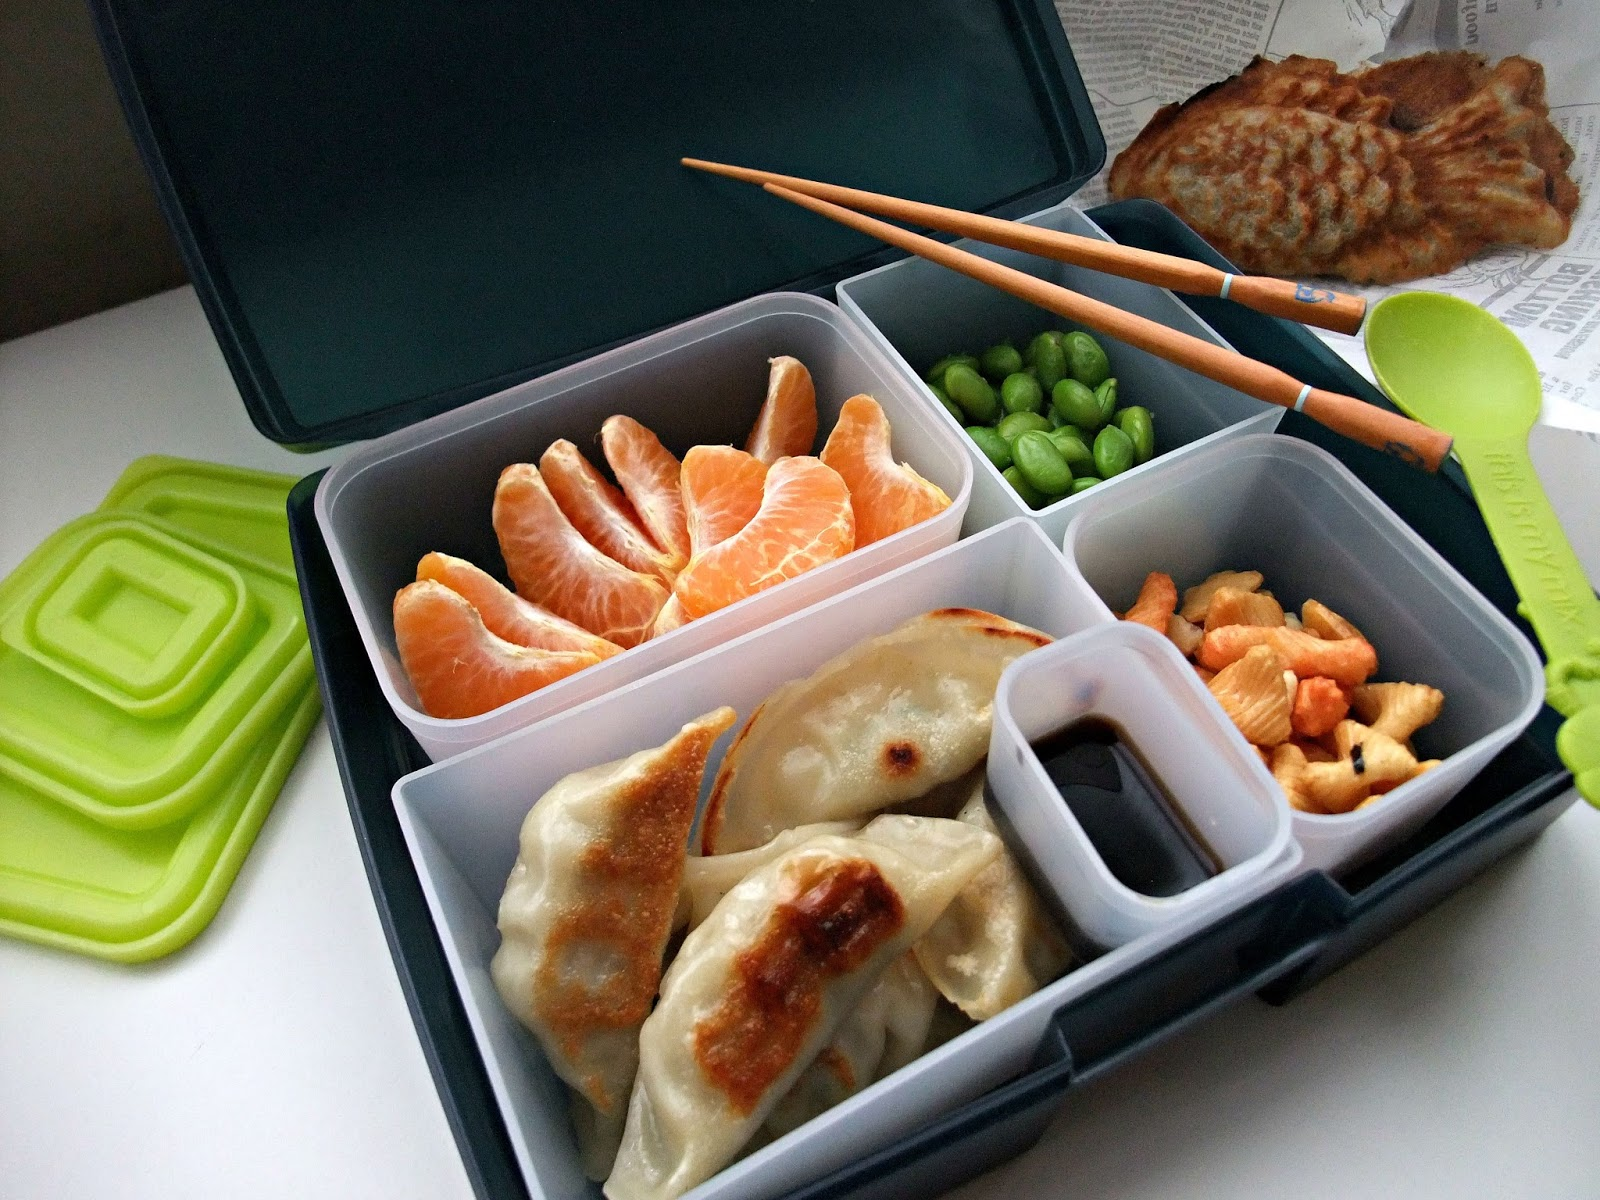 susan 39 s savour it packed lunch series challenge 4 compartmentalize. Black Bedroom Furniture Sets. Home Design Ideas